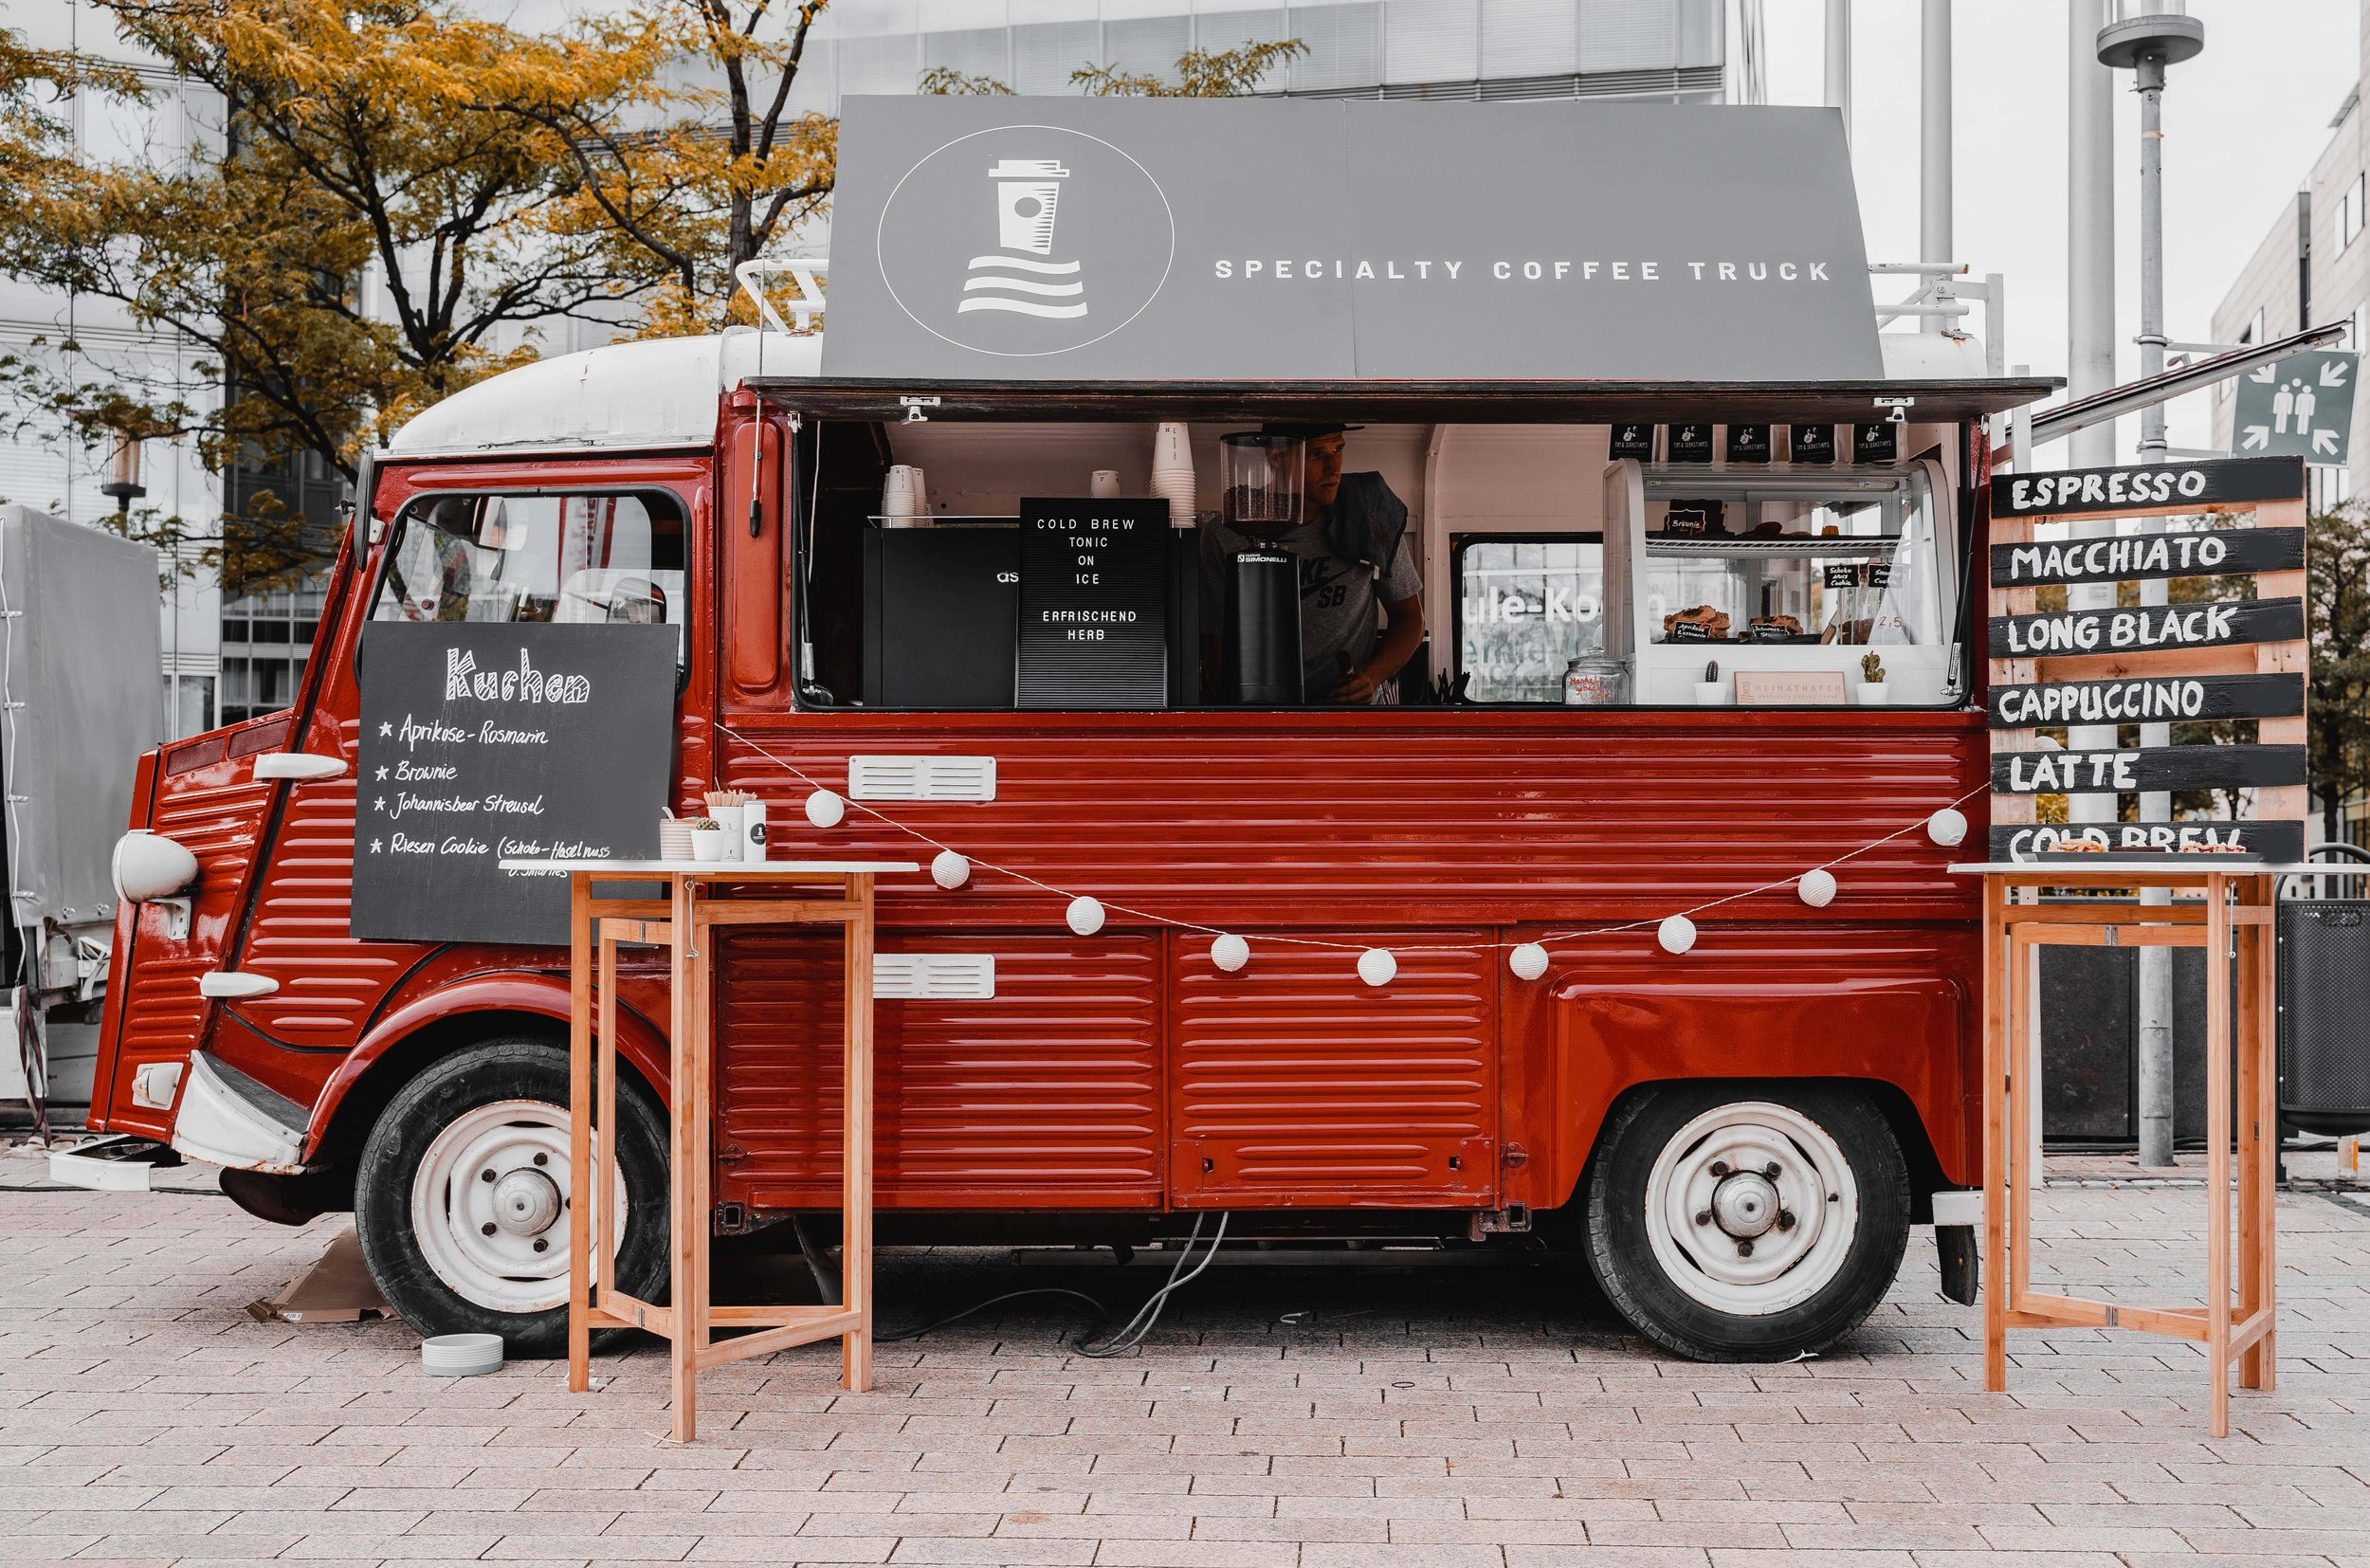 Food-Truck-Street-Food-Catering-Coffeetruck